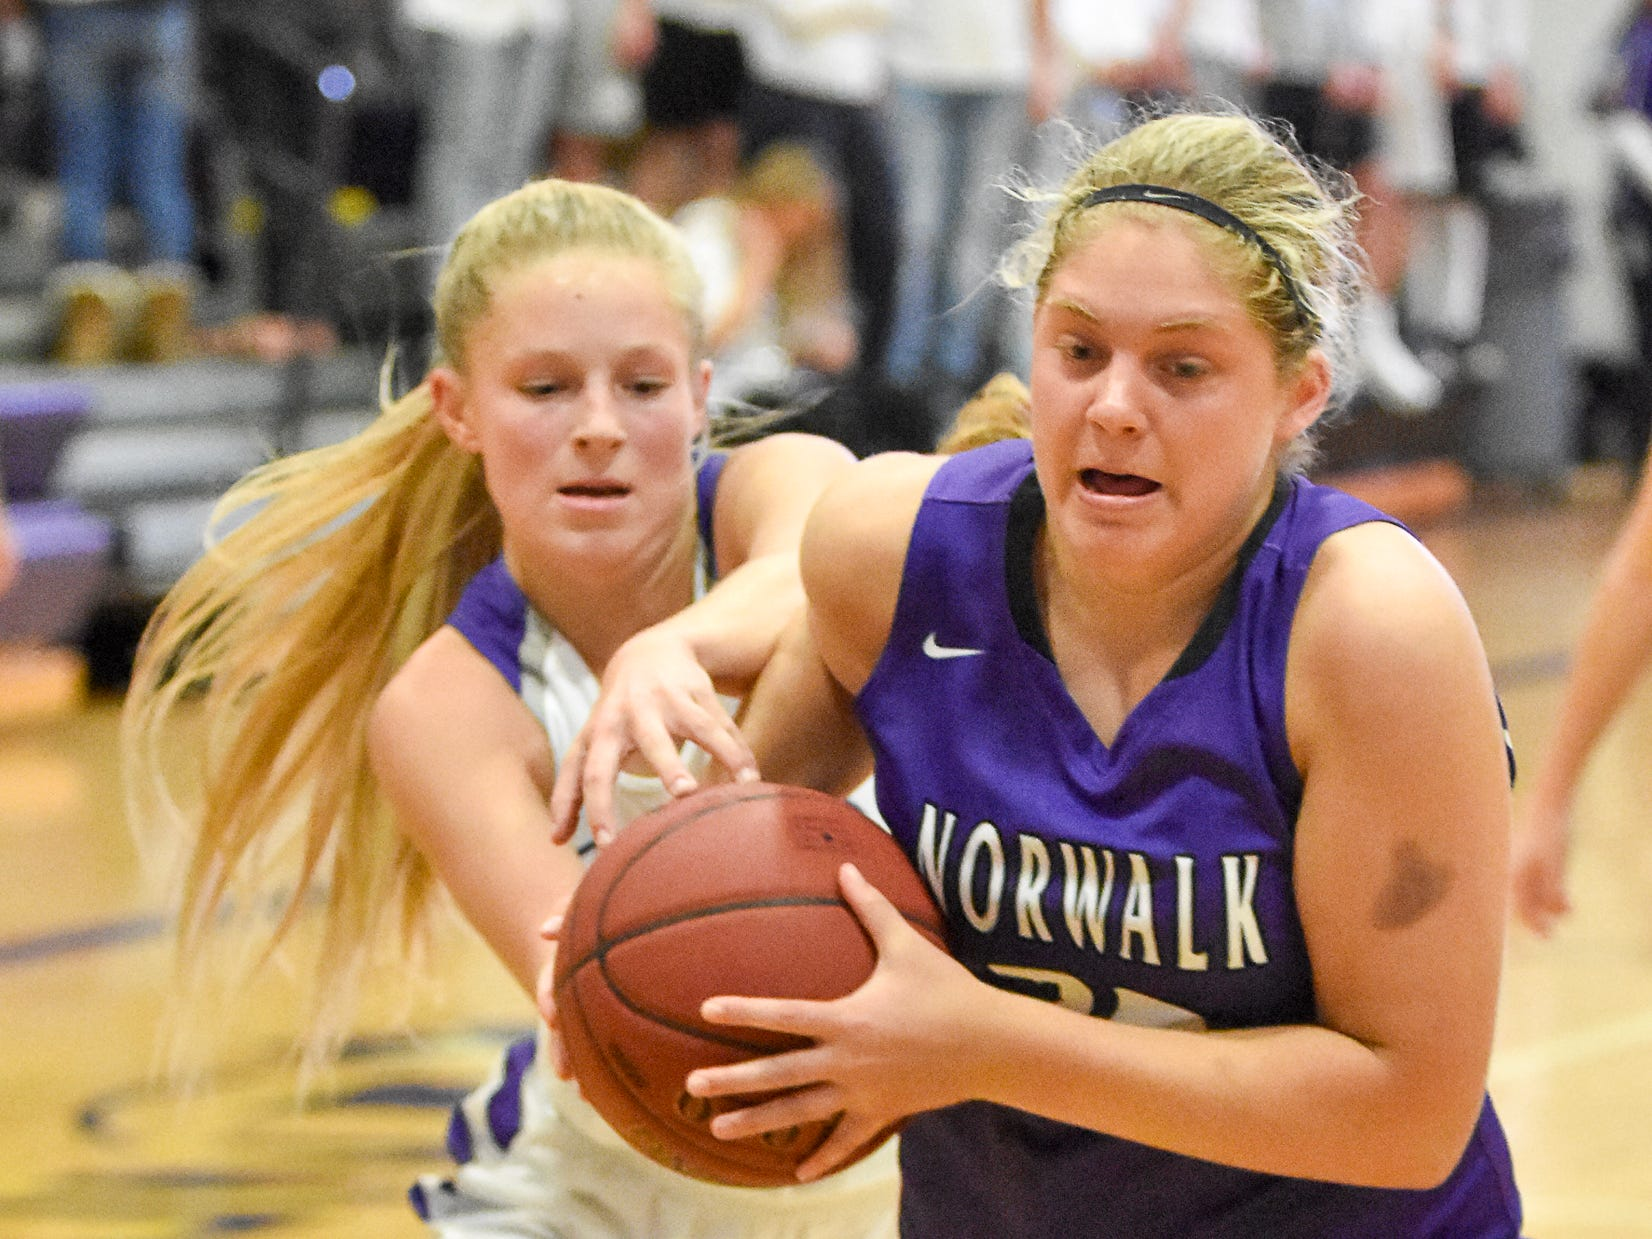 Norwalk's Emma Soukup fends off Indianola's Allison Coffey during the game. The Indianola girls' basketball team picked up their first win of the season with a 57-34 home victory over Norwalk on Nov. 30, 2018.